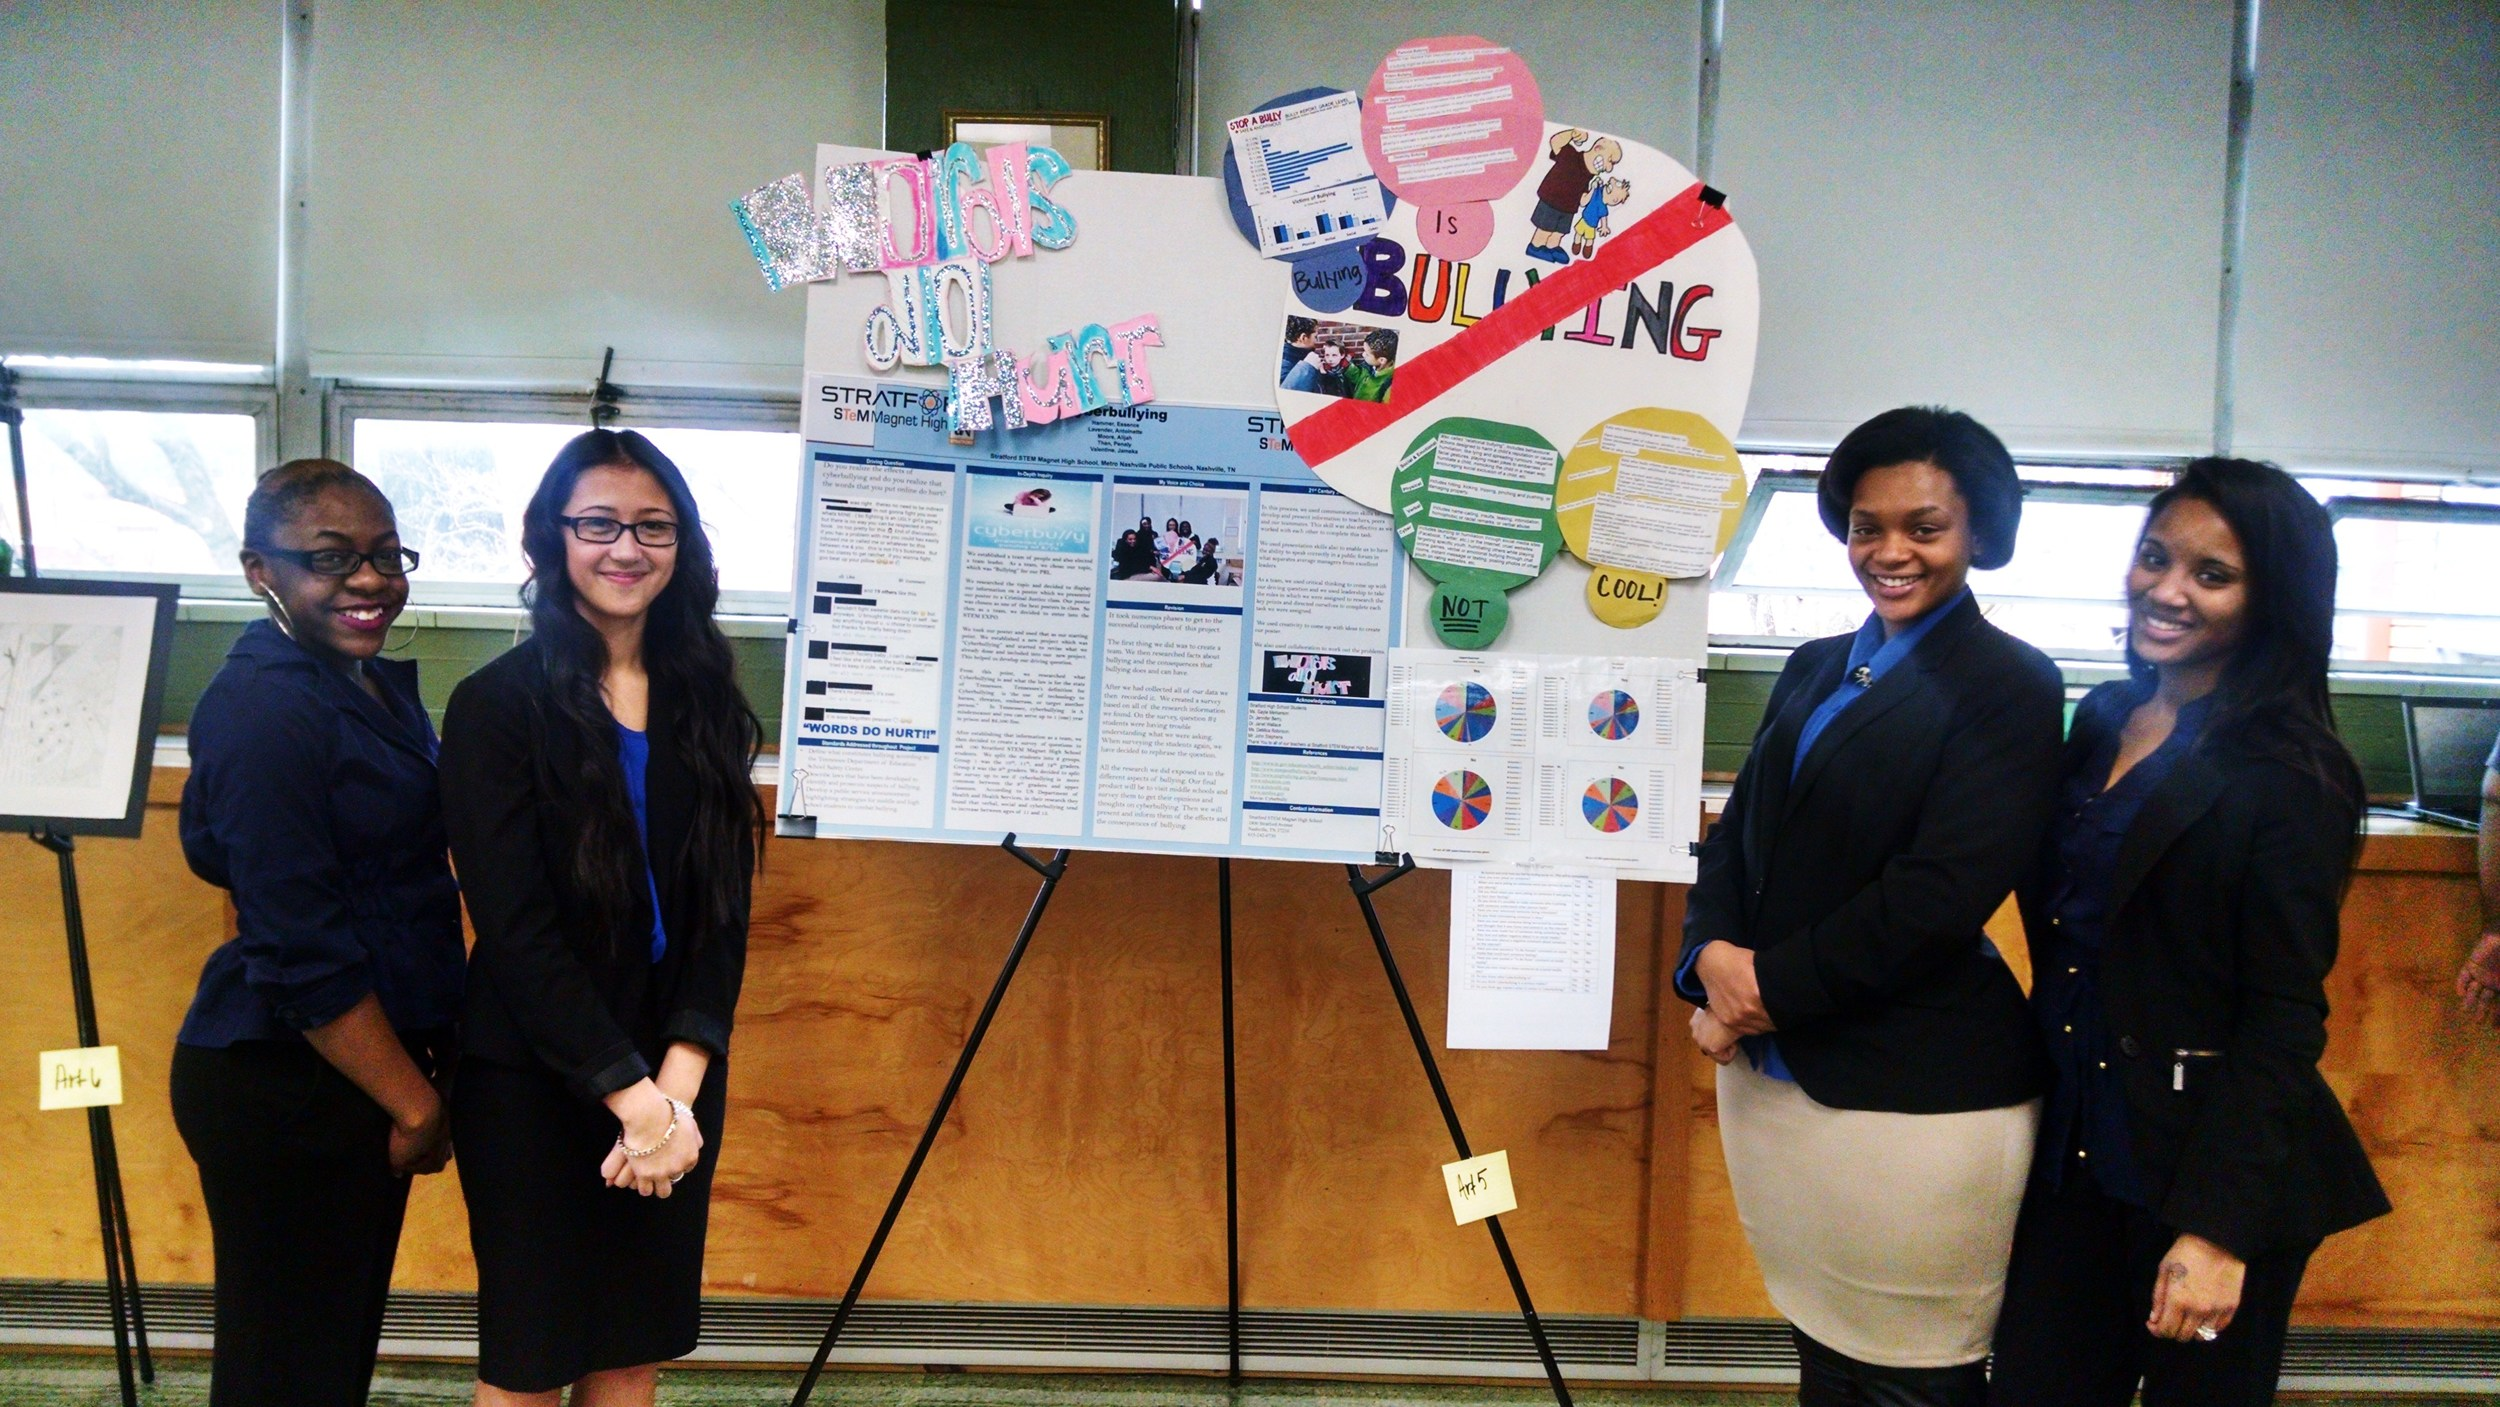 Four junior Stratford STEM students proudly display their project on cyber-bullying in schools. Great work ladies!